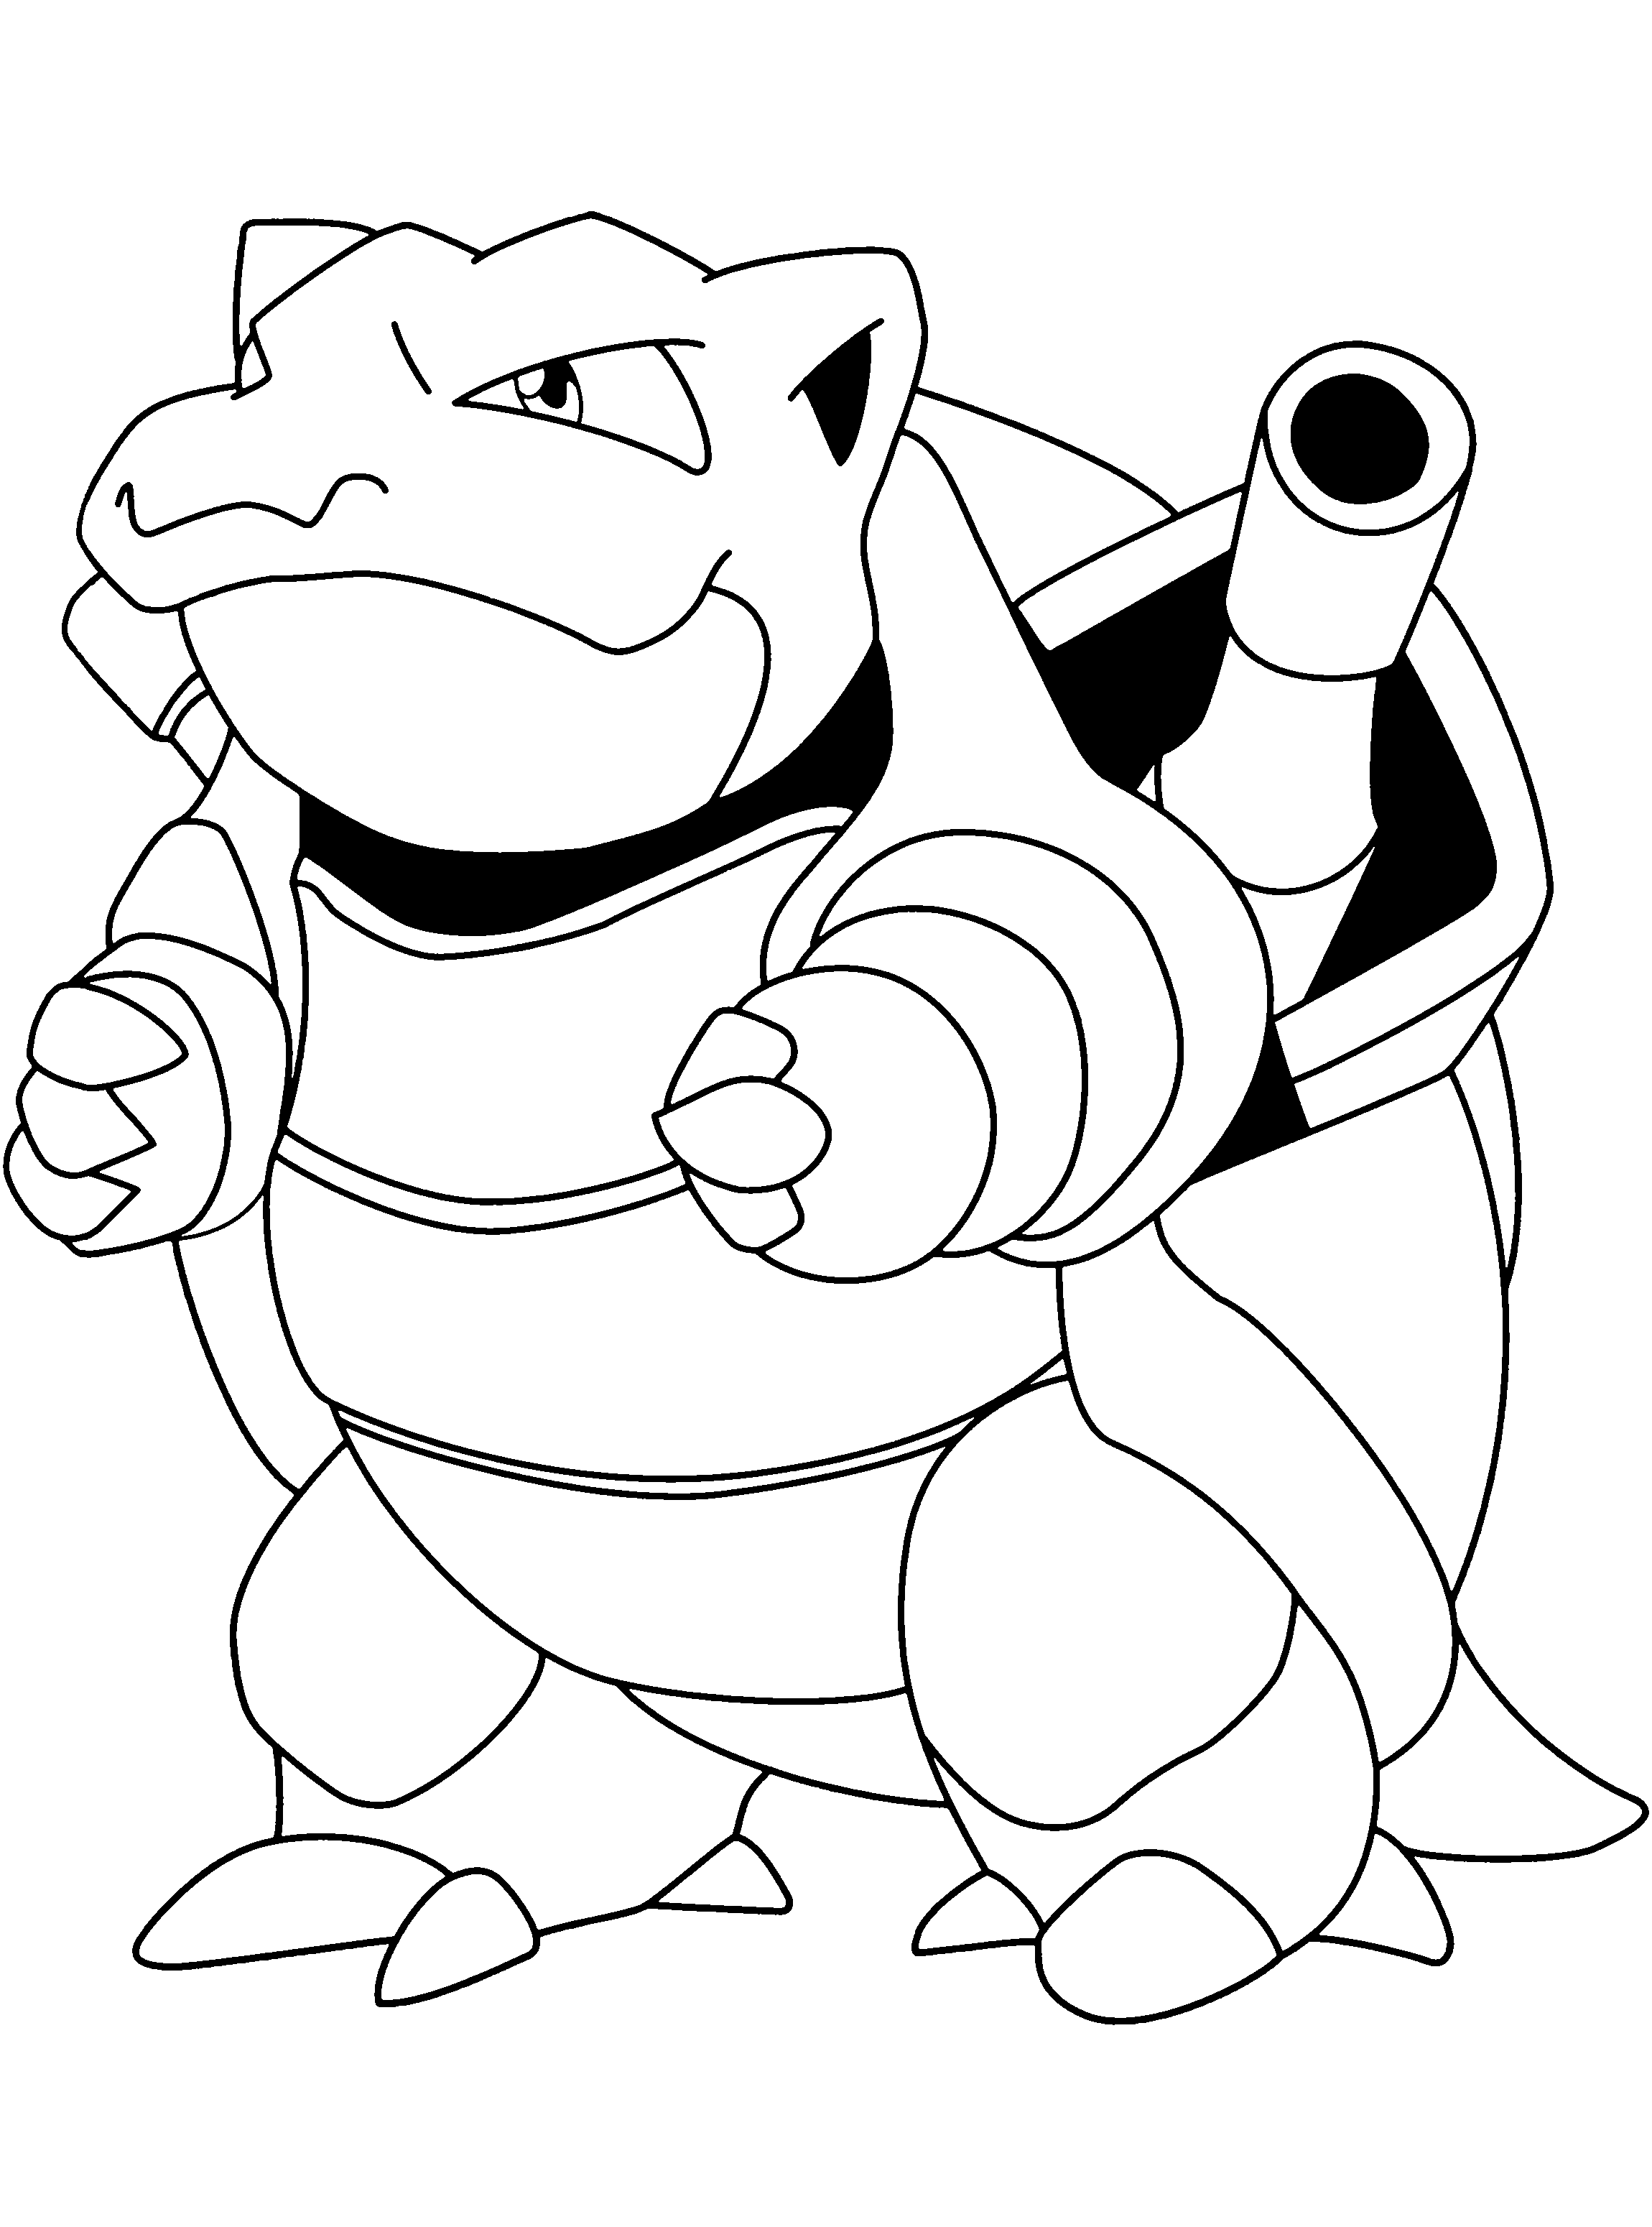 coloring pokemon pages coloring page pokemon coloring pages 20 pages coloring pokemon